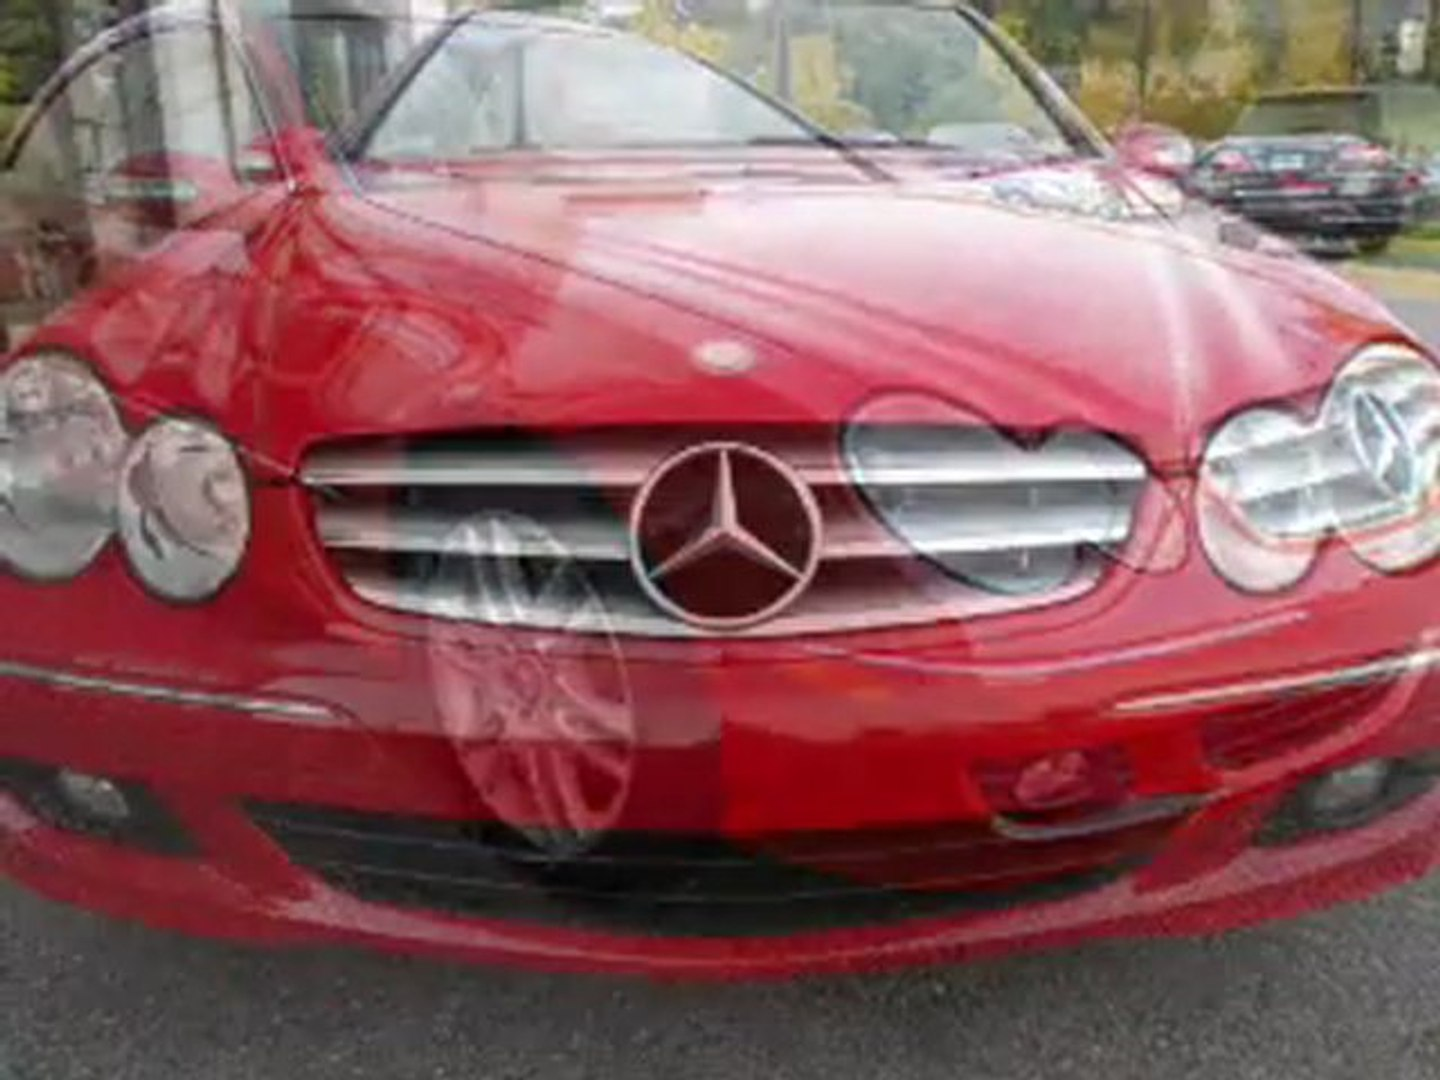 2009 Mercedes-Benz CLK-Class for sale in Midlothian VA - Certified Used Mercedes-Benz by EveryCarLis